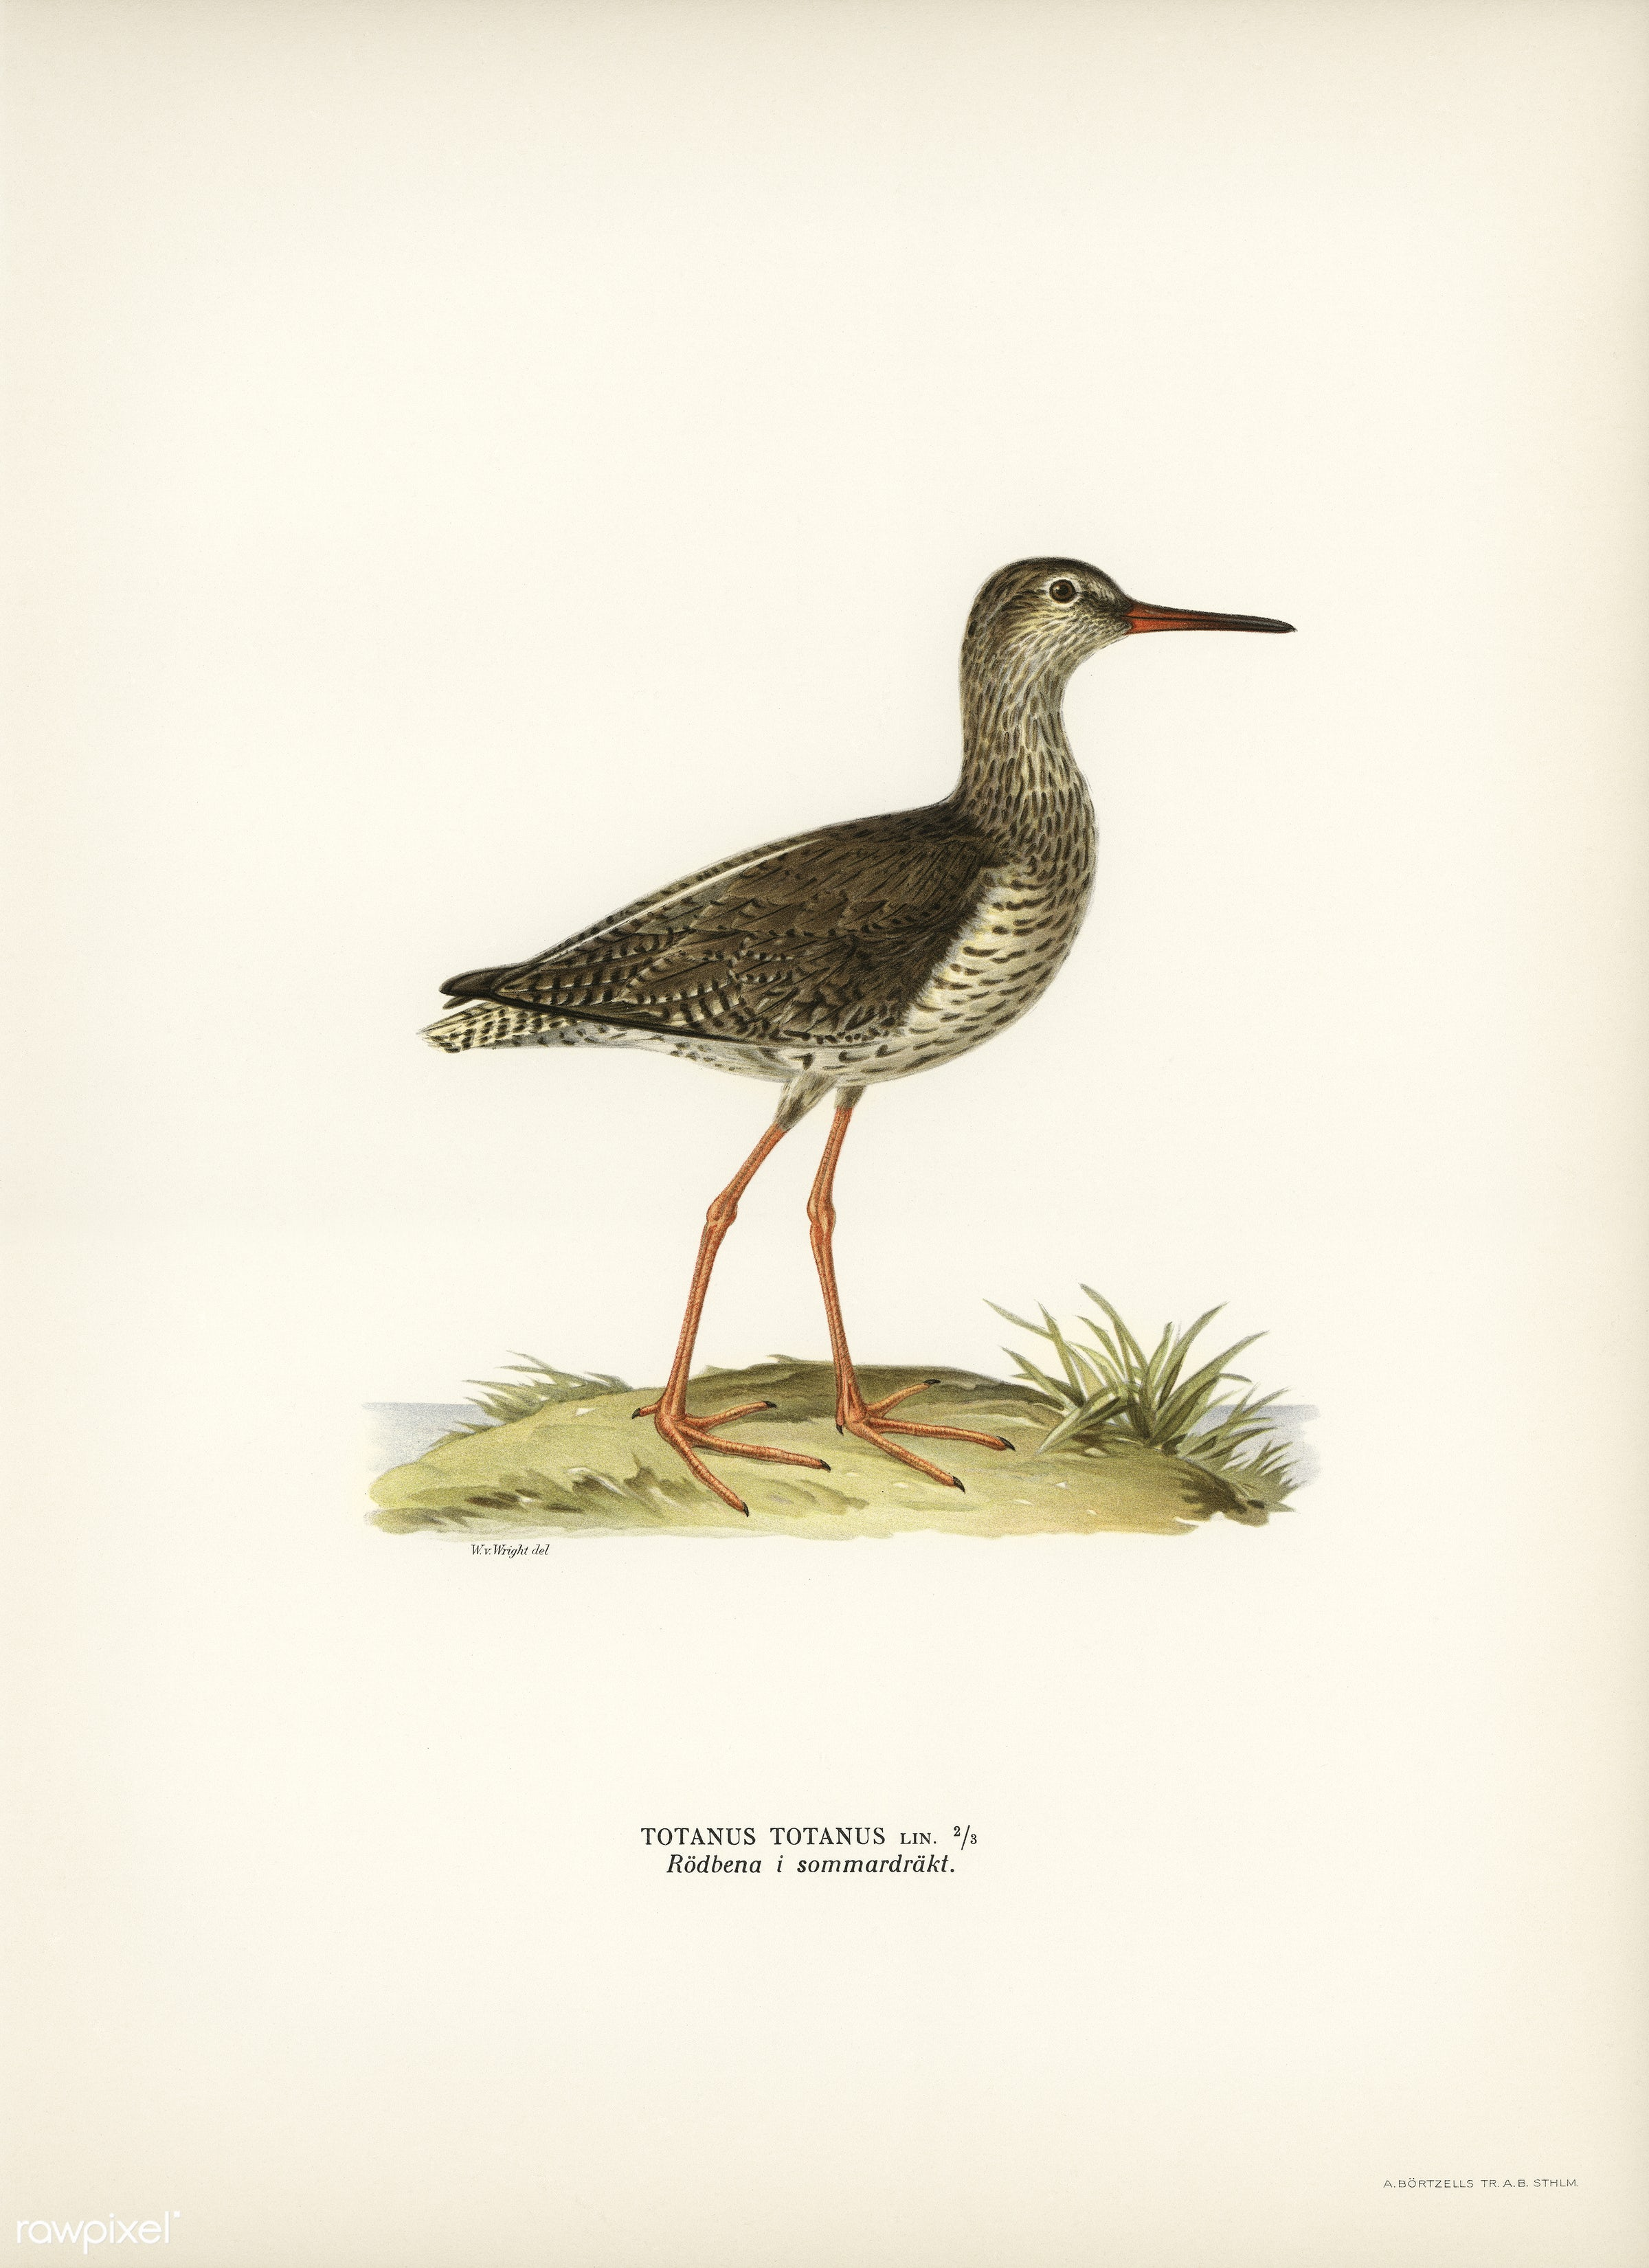 Common redshank (Totanus totanus) illustrated by the von Wright brothers. Digitally enhanced from our own 1929 folio version...